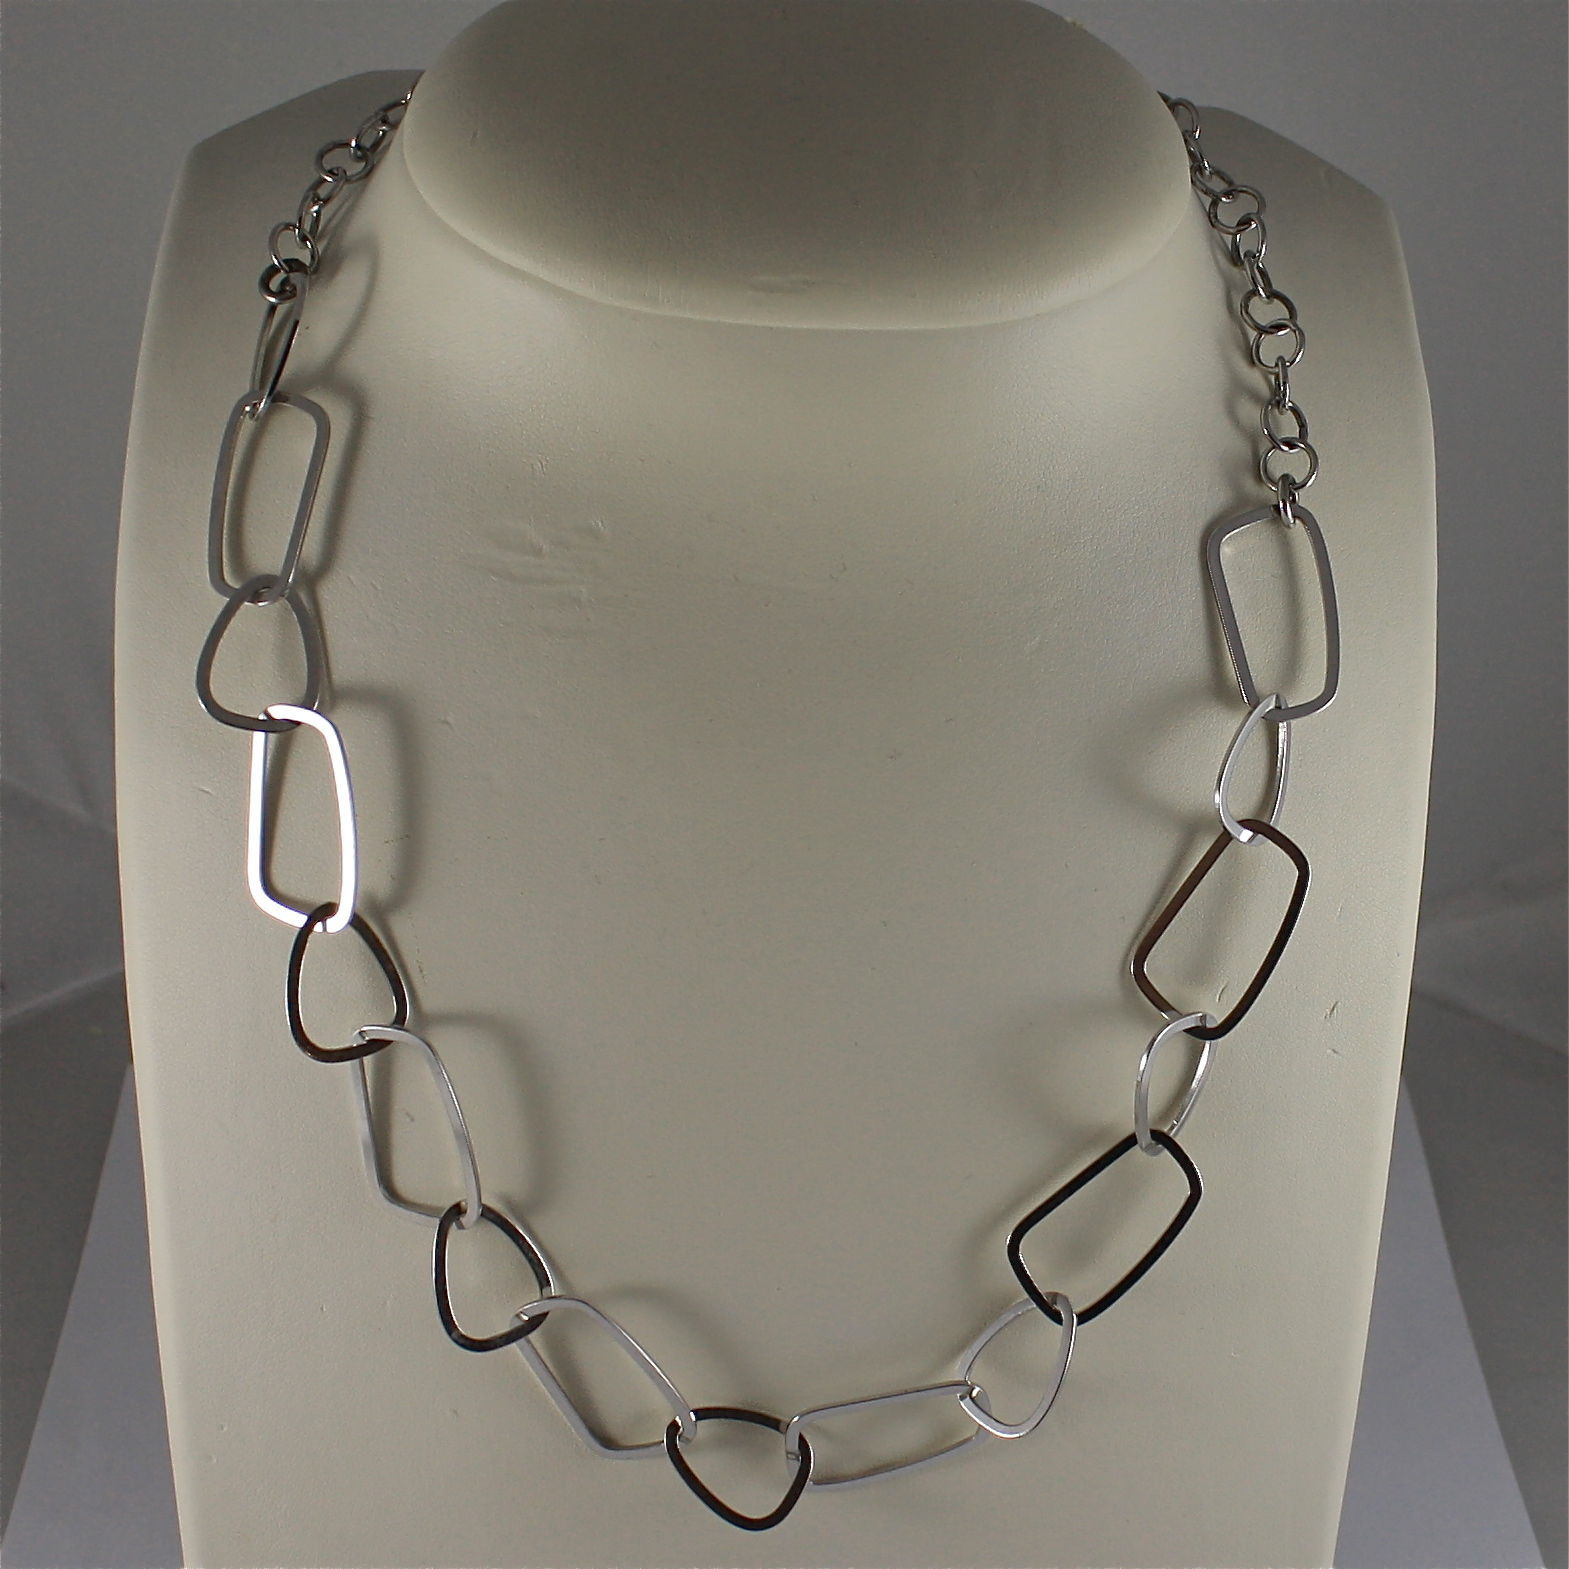 .925 SILVER RHODIUM NECKLACE, 19,69 In, MIXED CHAIN GEOMETRIC MESH, ADJUSTABLE.